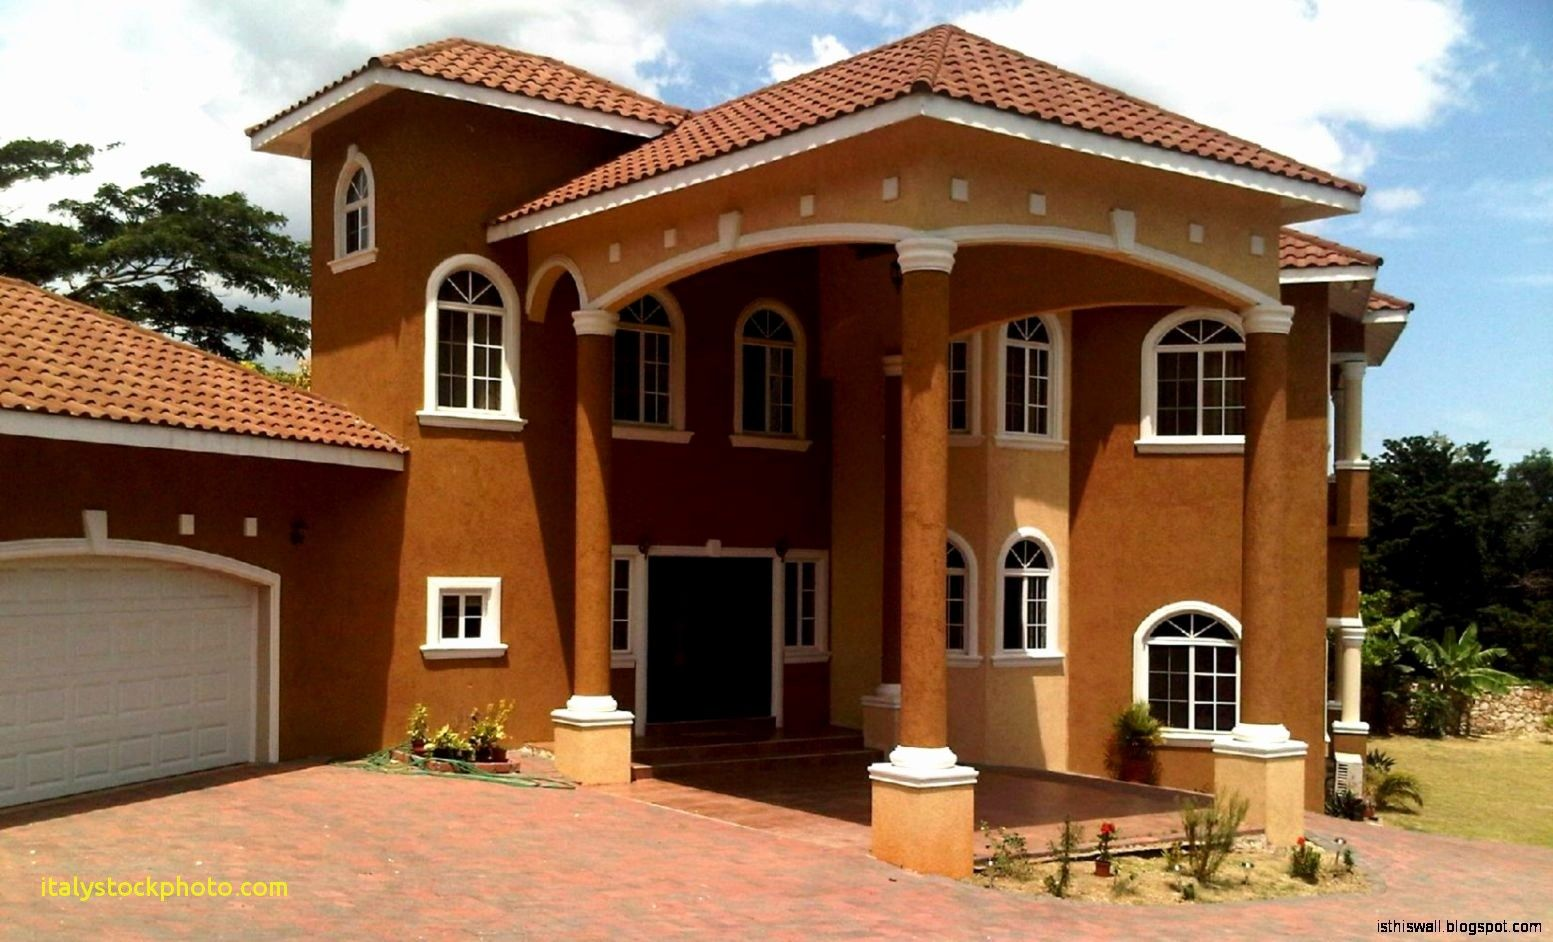 Three bedroom house designs in jamaica for rent near me houseinjamaica theshiphouseinjamaica boathouseinjamaica also rh pinterest